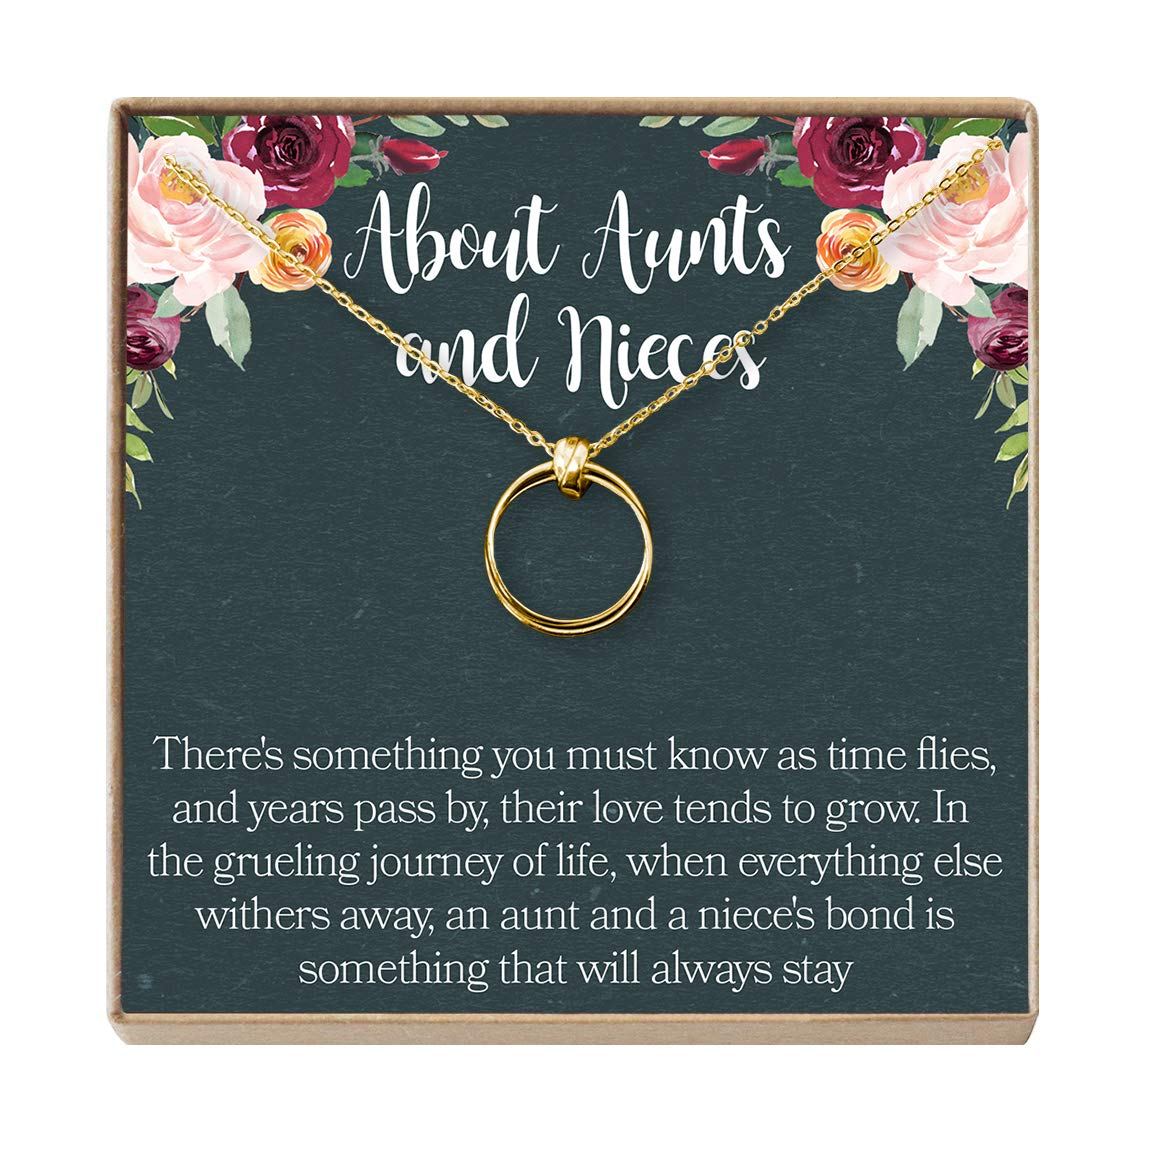 Aunt-Niece Quotes Dear Ava Aunt-Niece Necklace: Aunt-Niece Gift Aunt Necklace 2 Linked Circles Aunt-Niece Jewelry